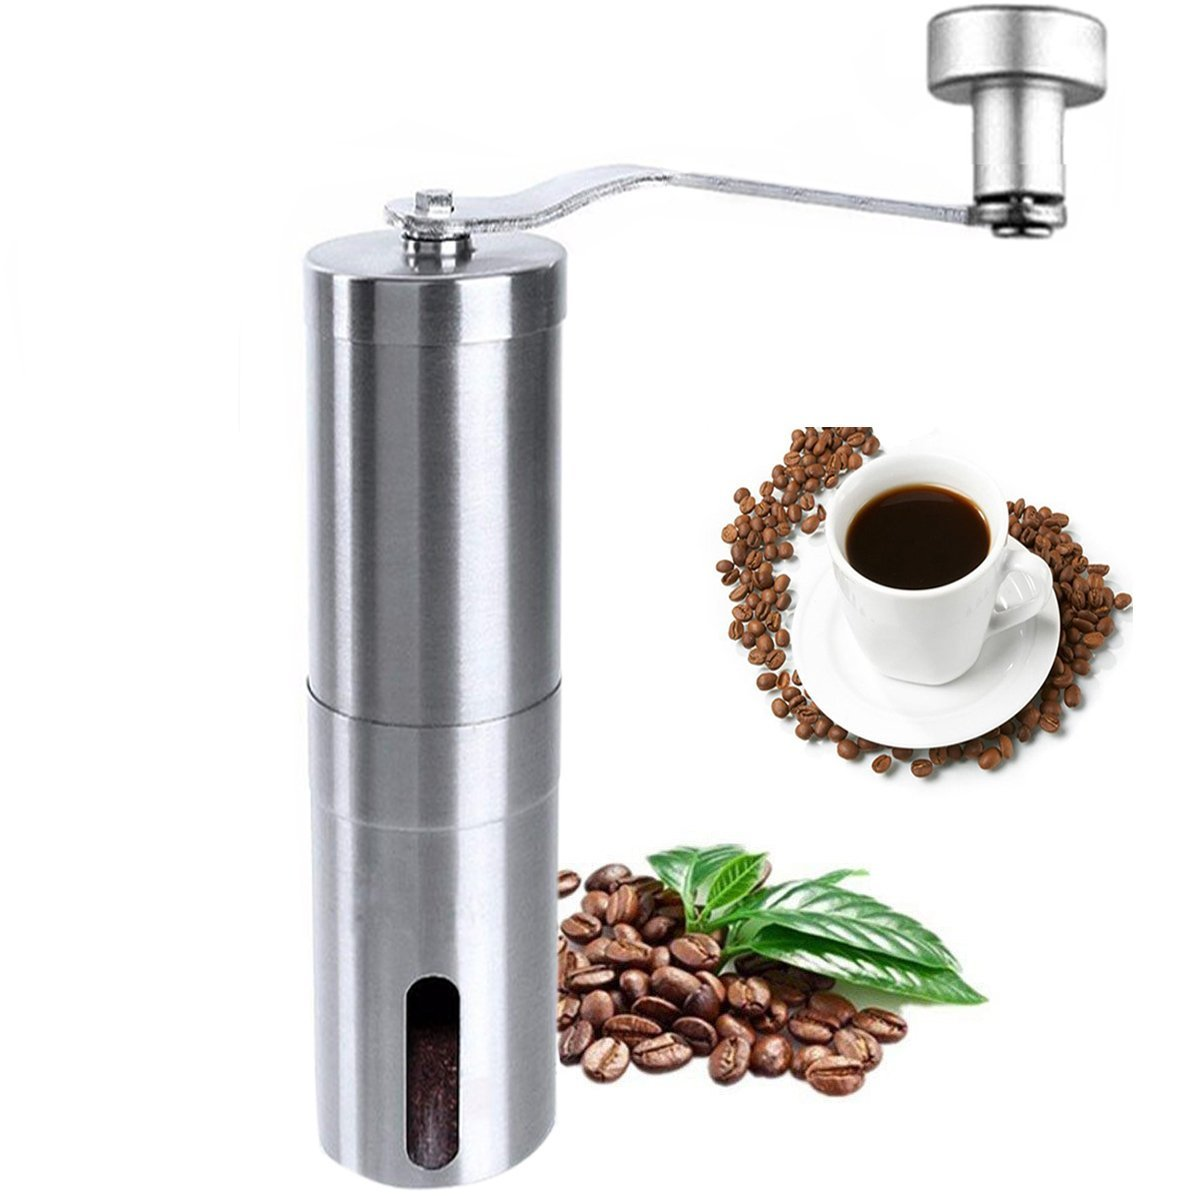 Manual Coffee Grinder, Stainless Steel Coffee Mill, Hand Burr Coffee Bean Grinder, Adjustable Grind Coarseness, Portable Ceramic Conical Burr Mill for Precision Brewing With Spoon and Cleaning Brush